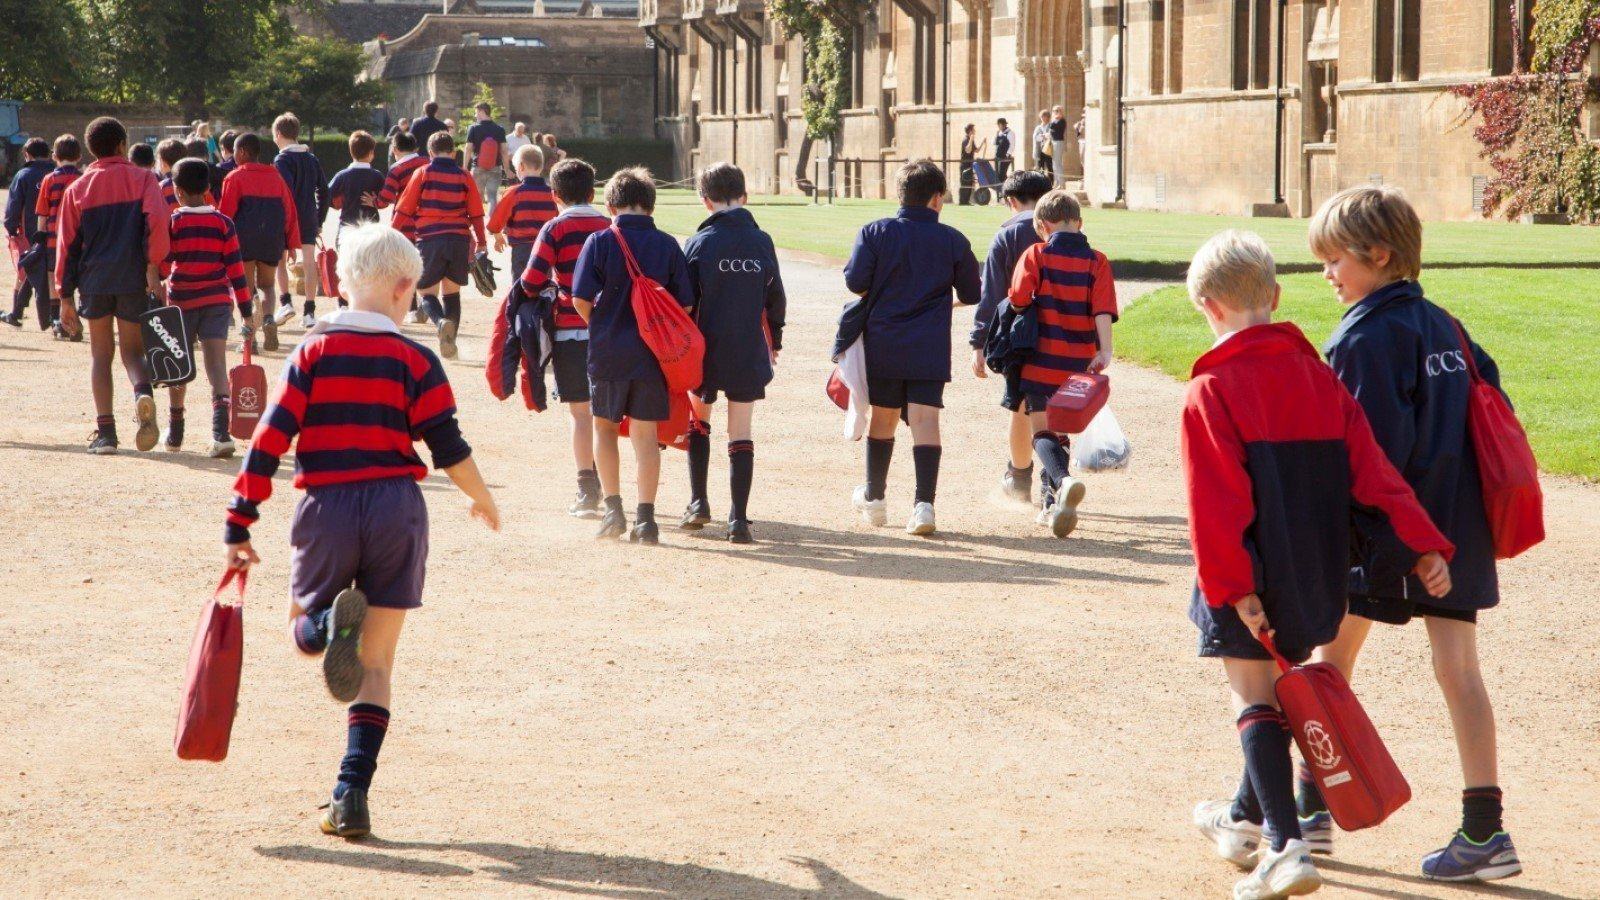 Christ Church Cathedral School Oxford